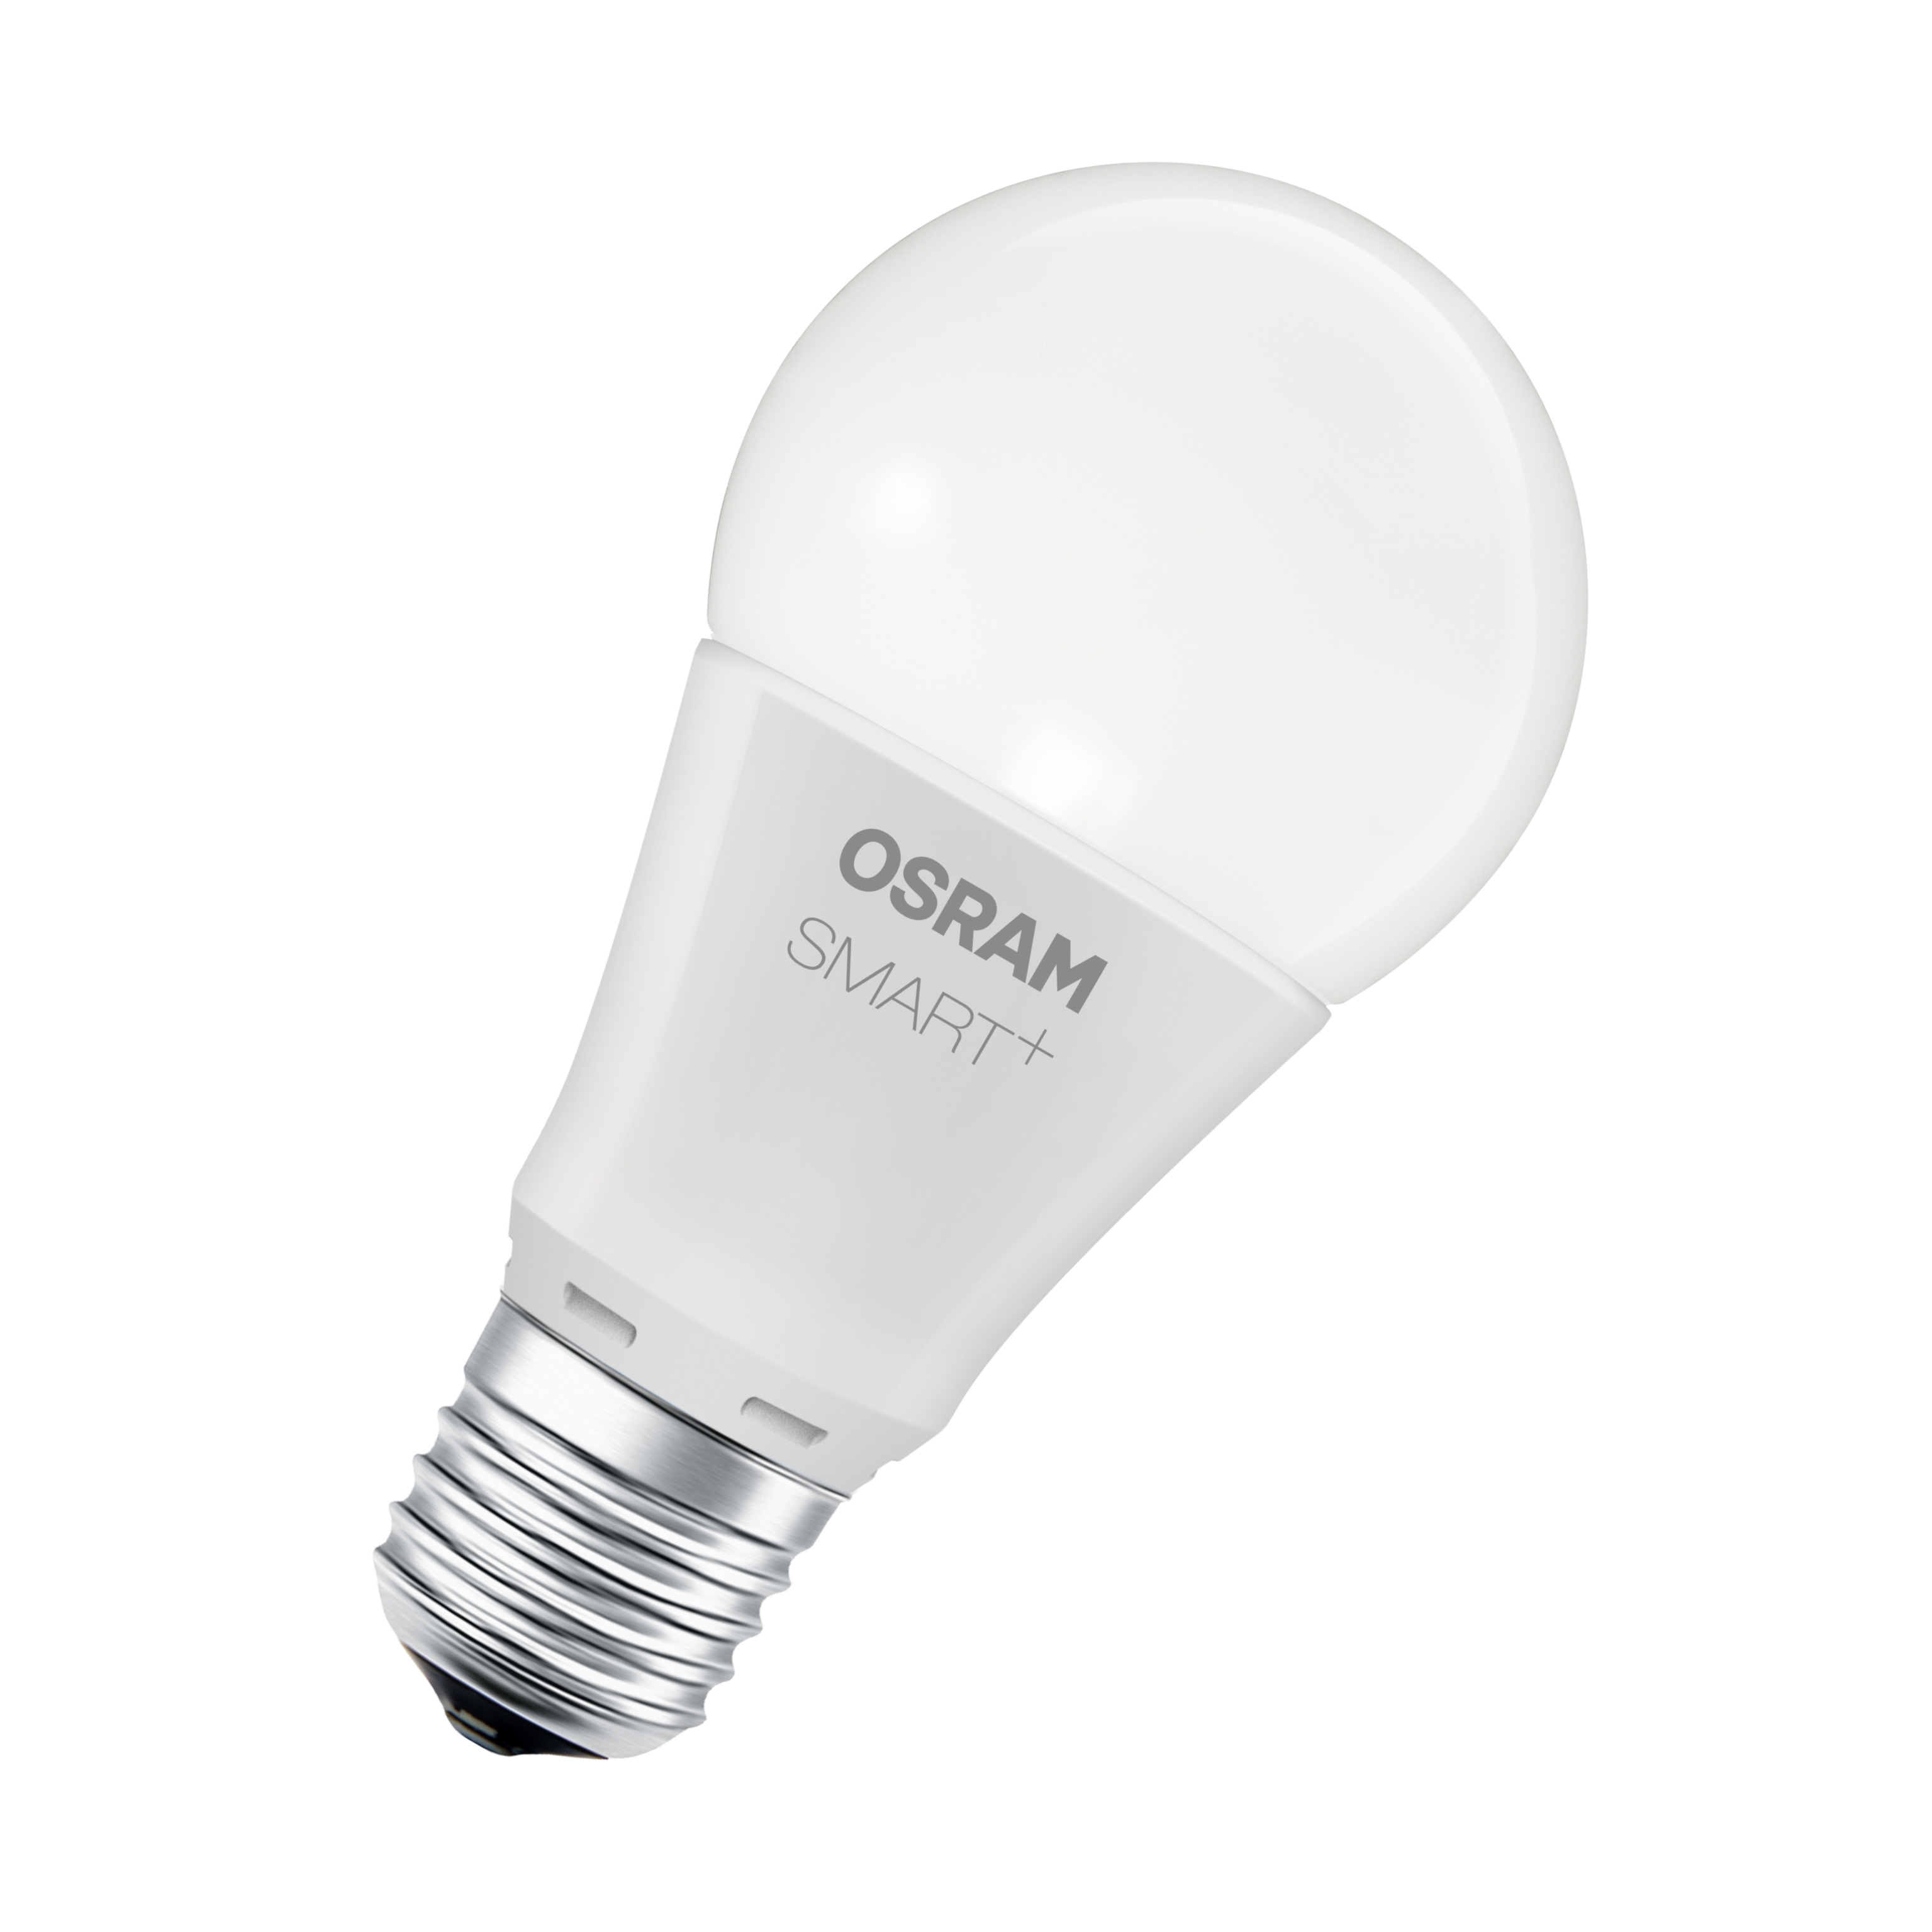 Osram E27 Lamp 8.5W Tunable